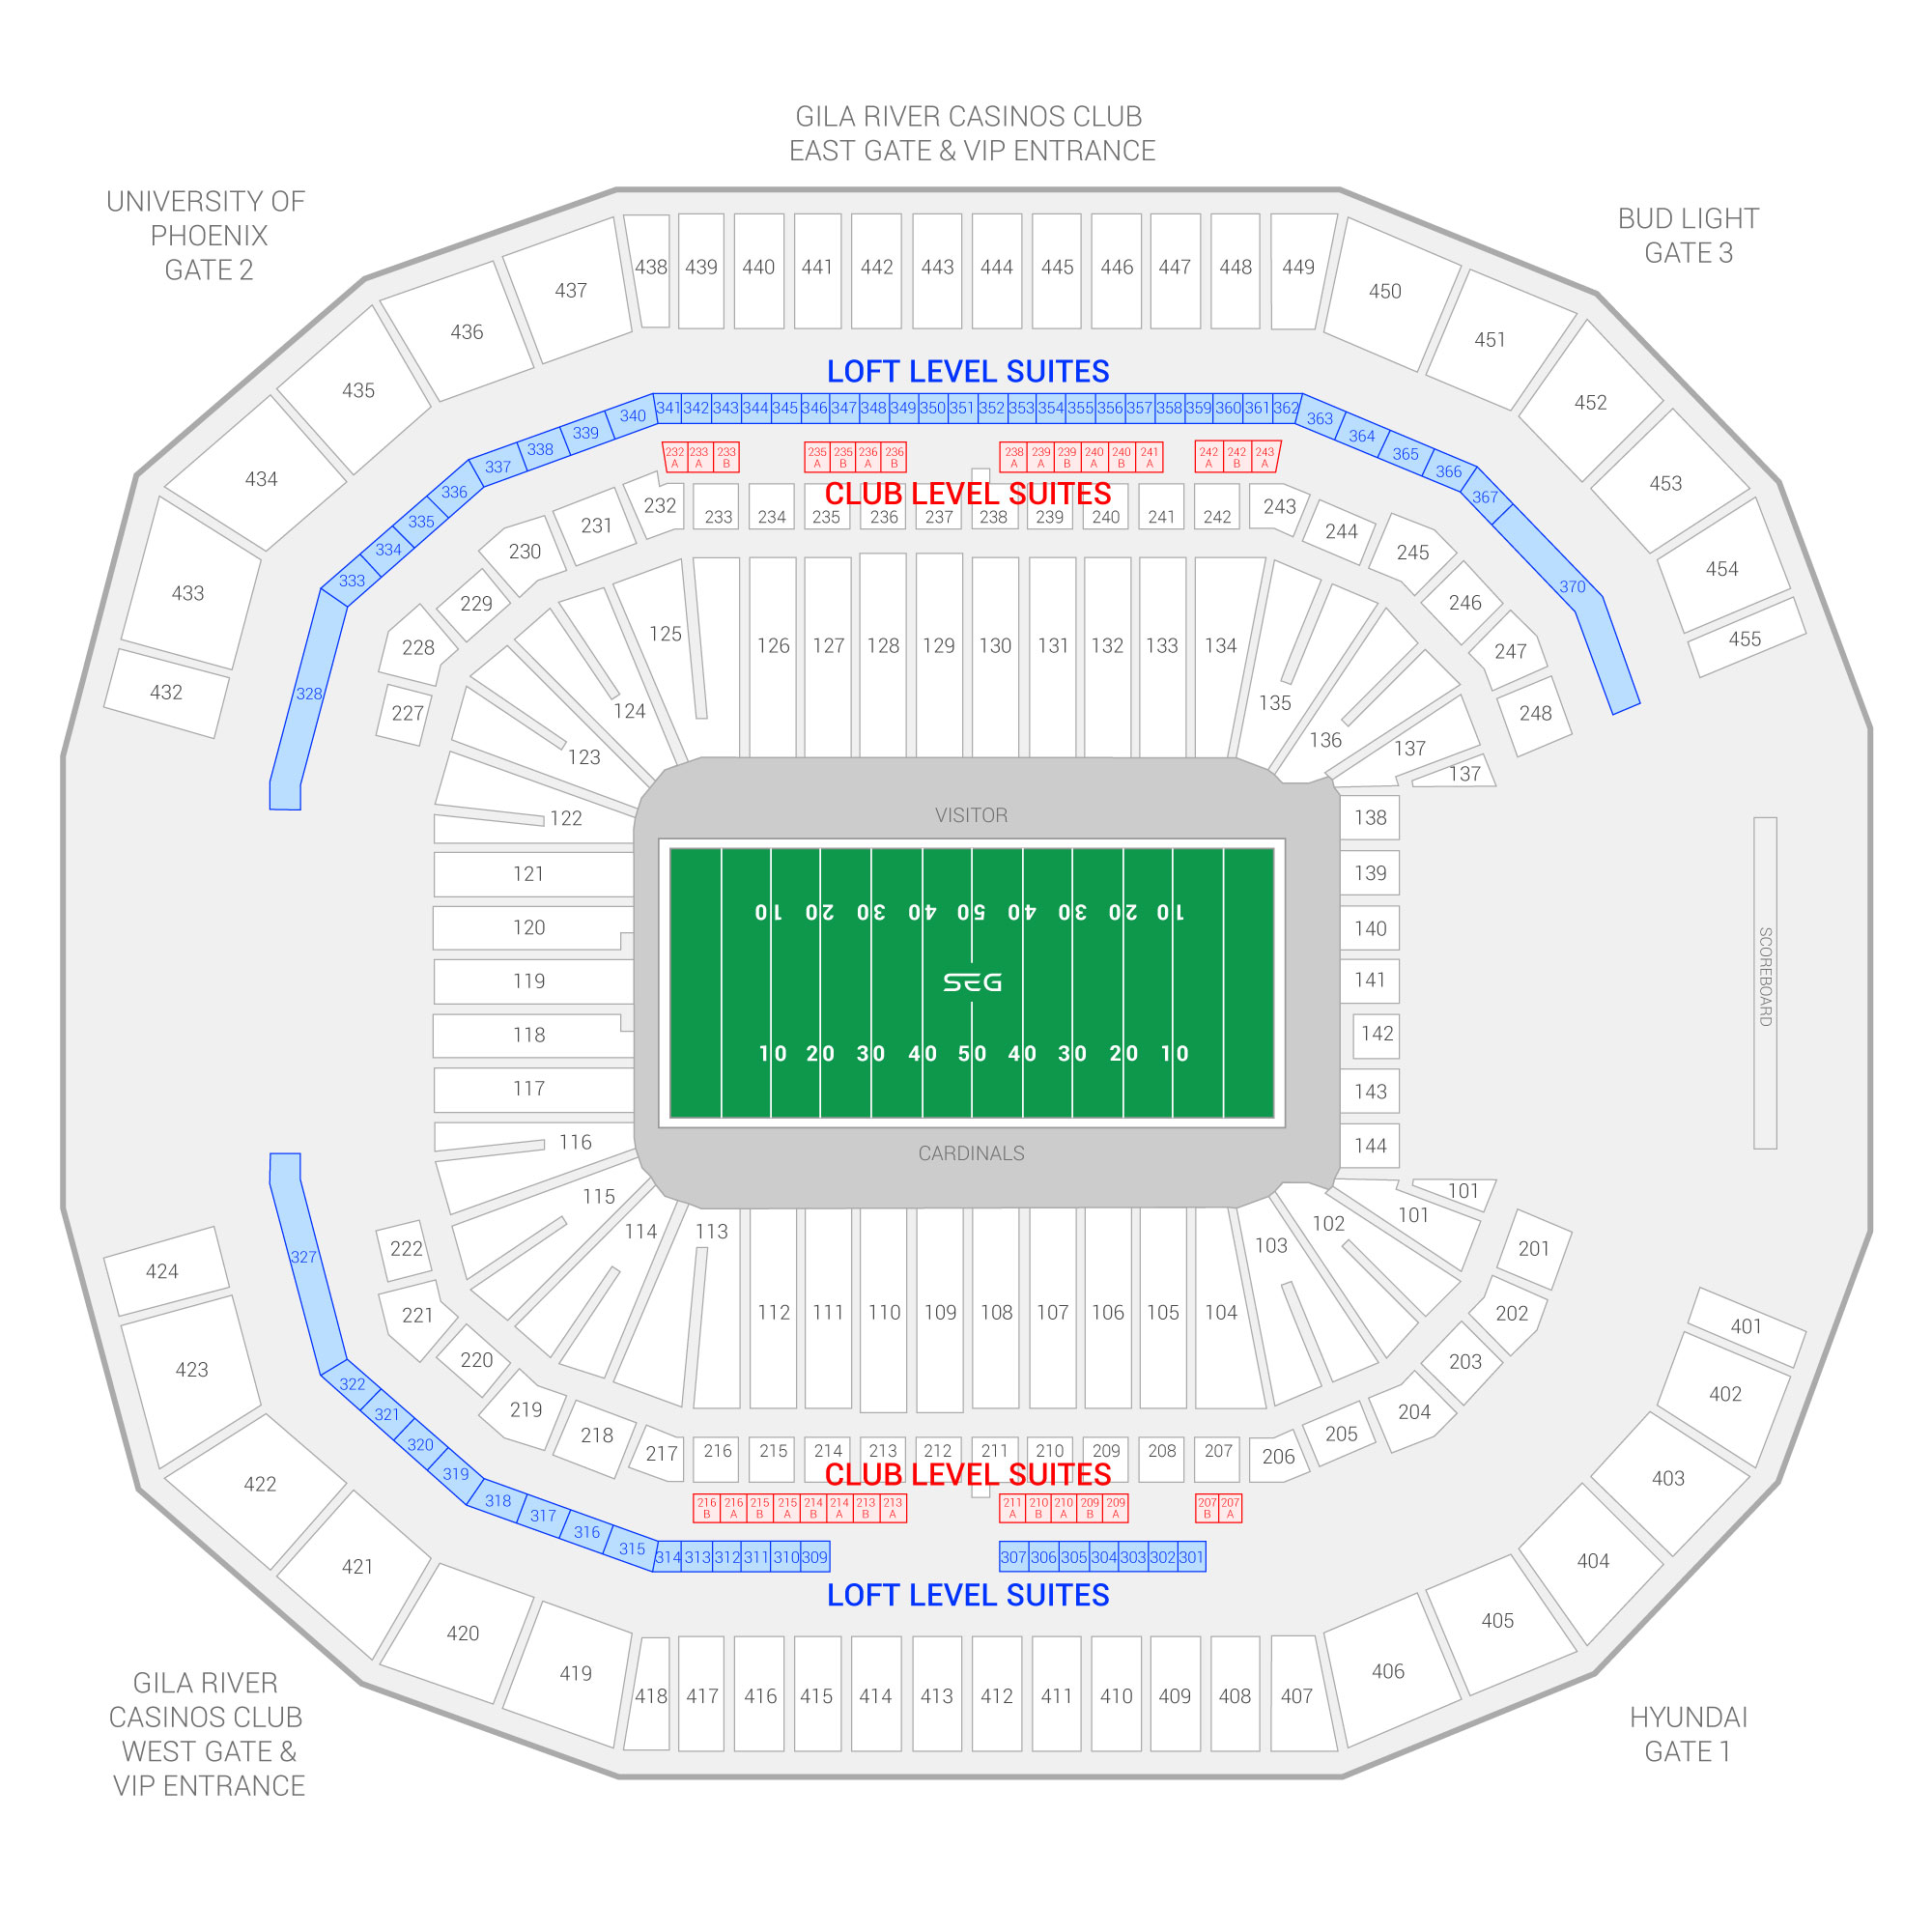 State Farm Stadium / Arizona Cardinals Suite Map and Seating Chart